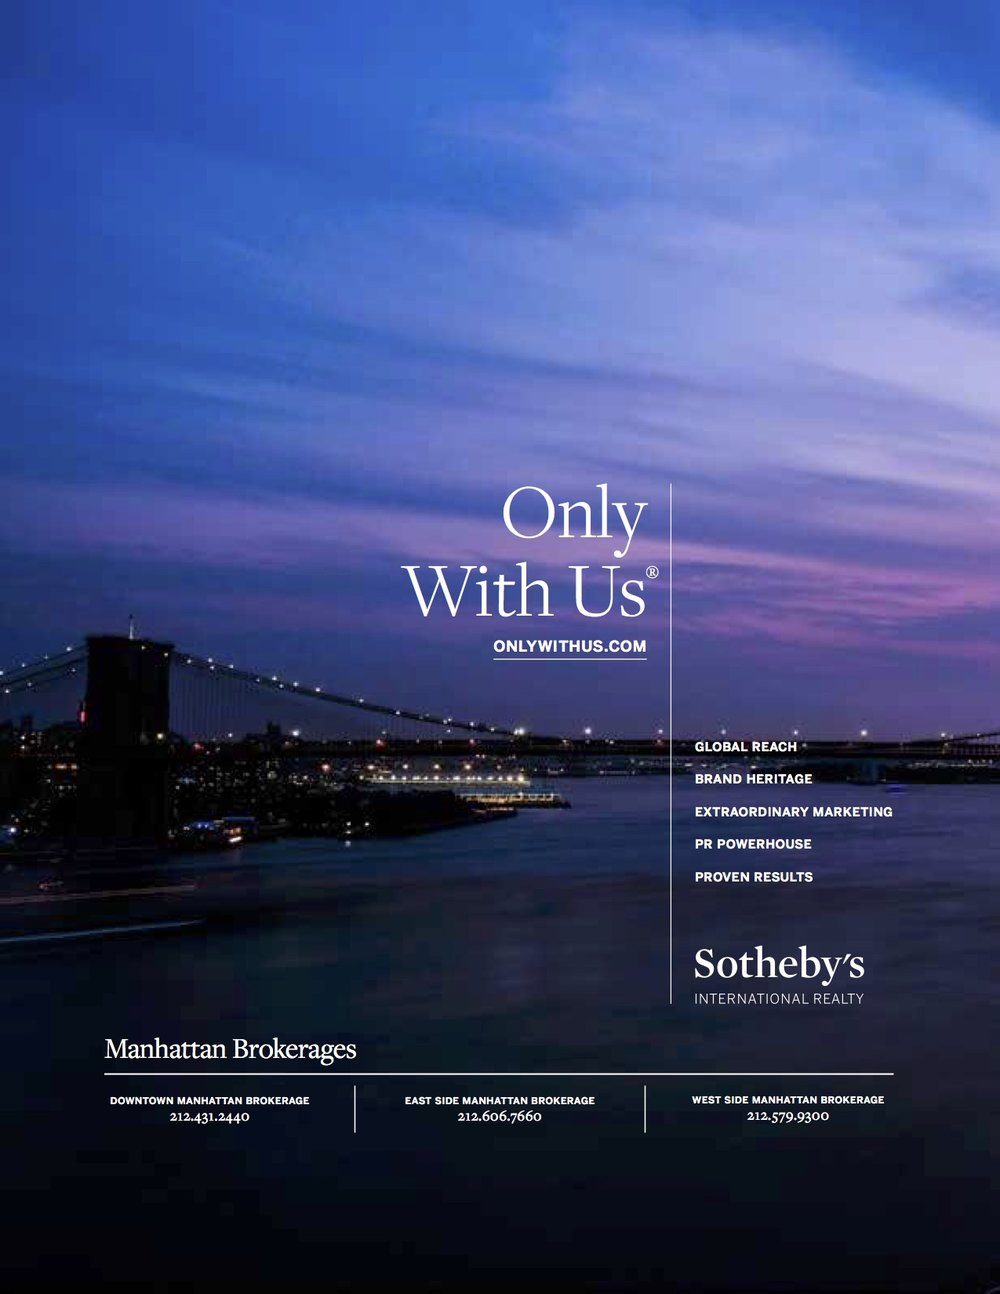 Sotheby's Internation Realty NYC MARKET REPORT_Q4_2017_18.jpg